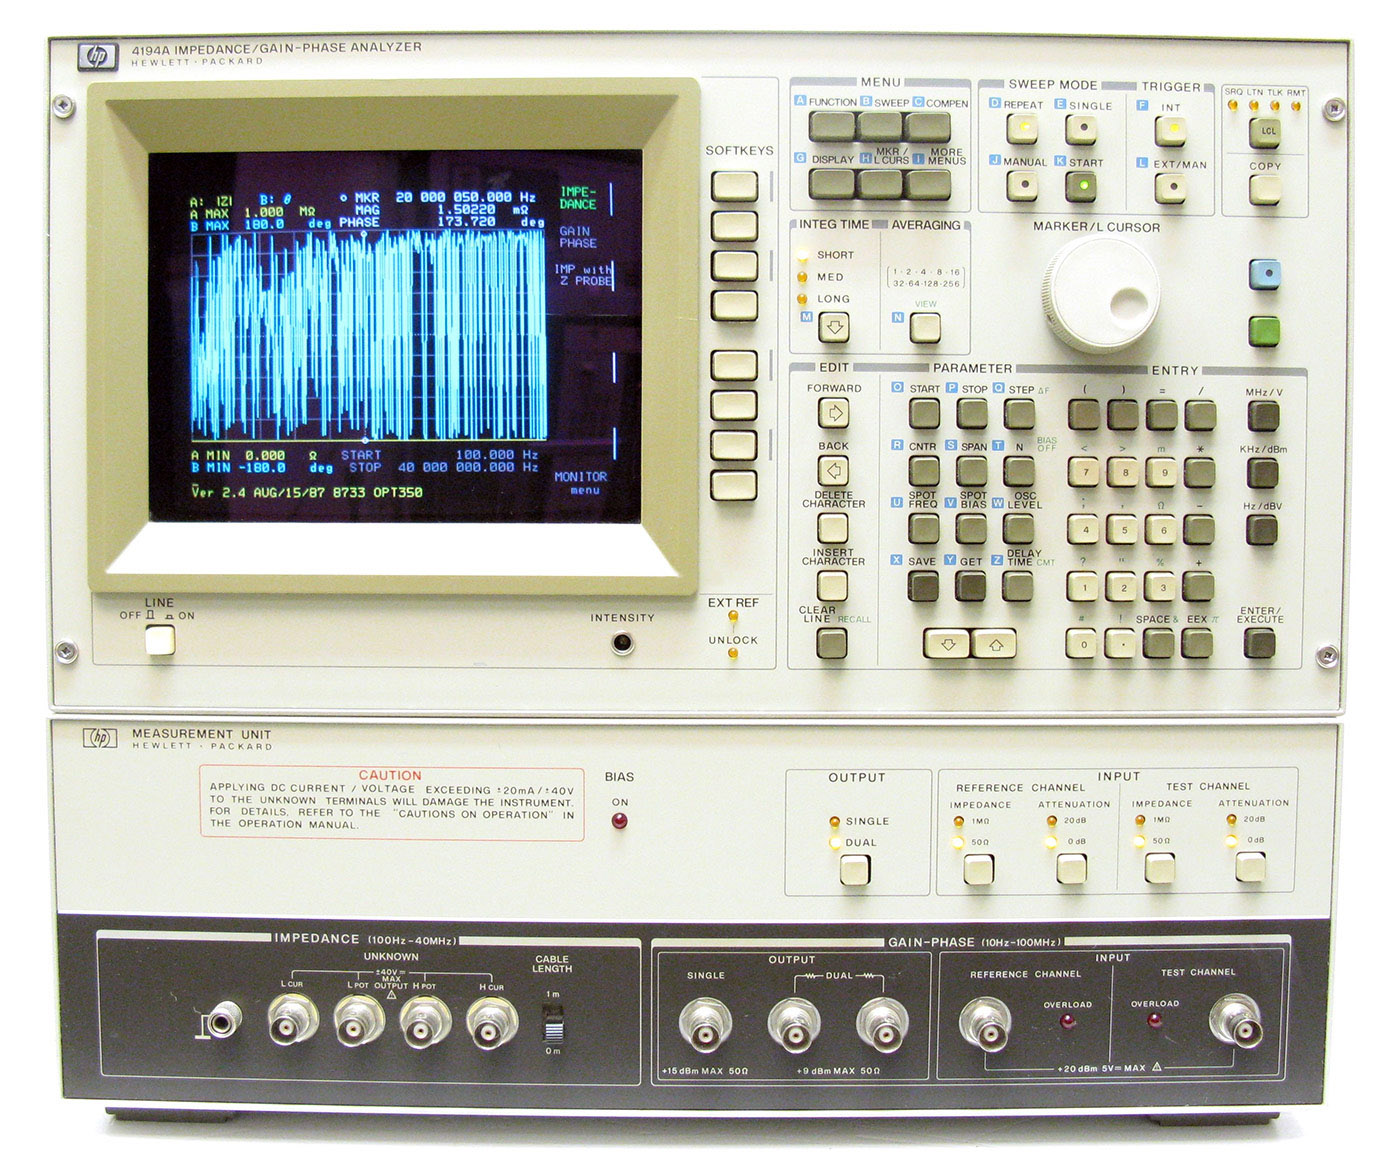 4194A Impedance/Gain-Phase Analyzer